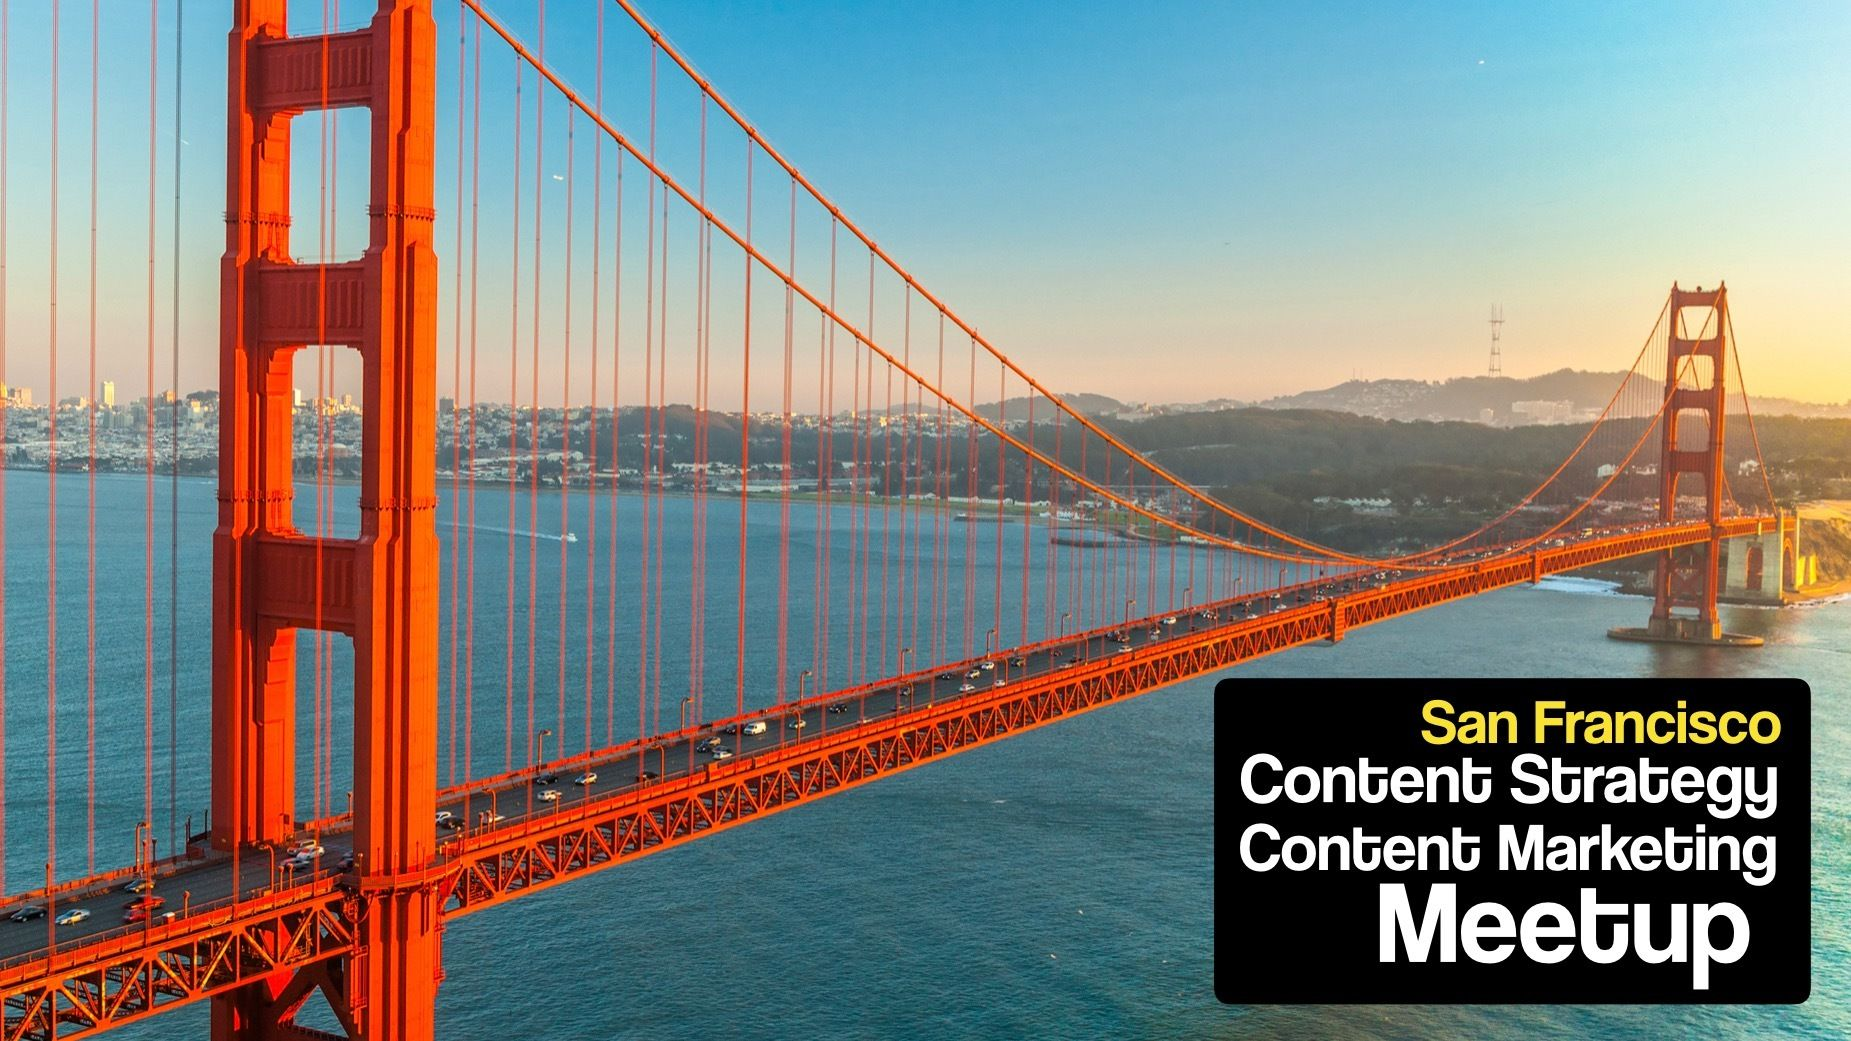 San Francisco Content Strategy/Content Marketing Pros